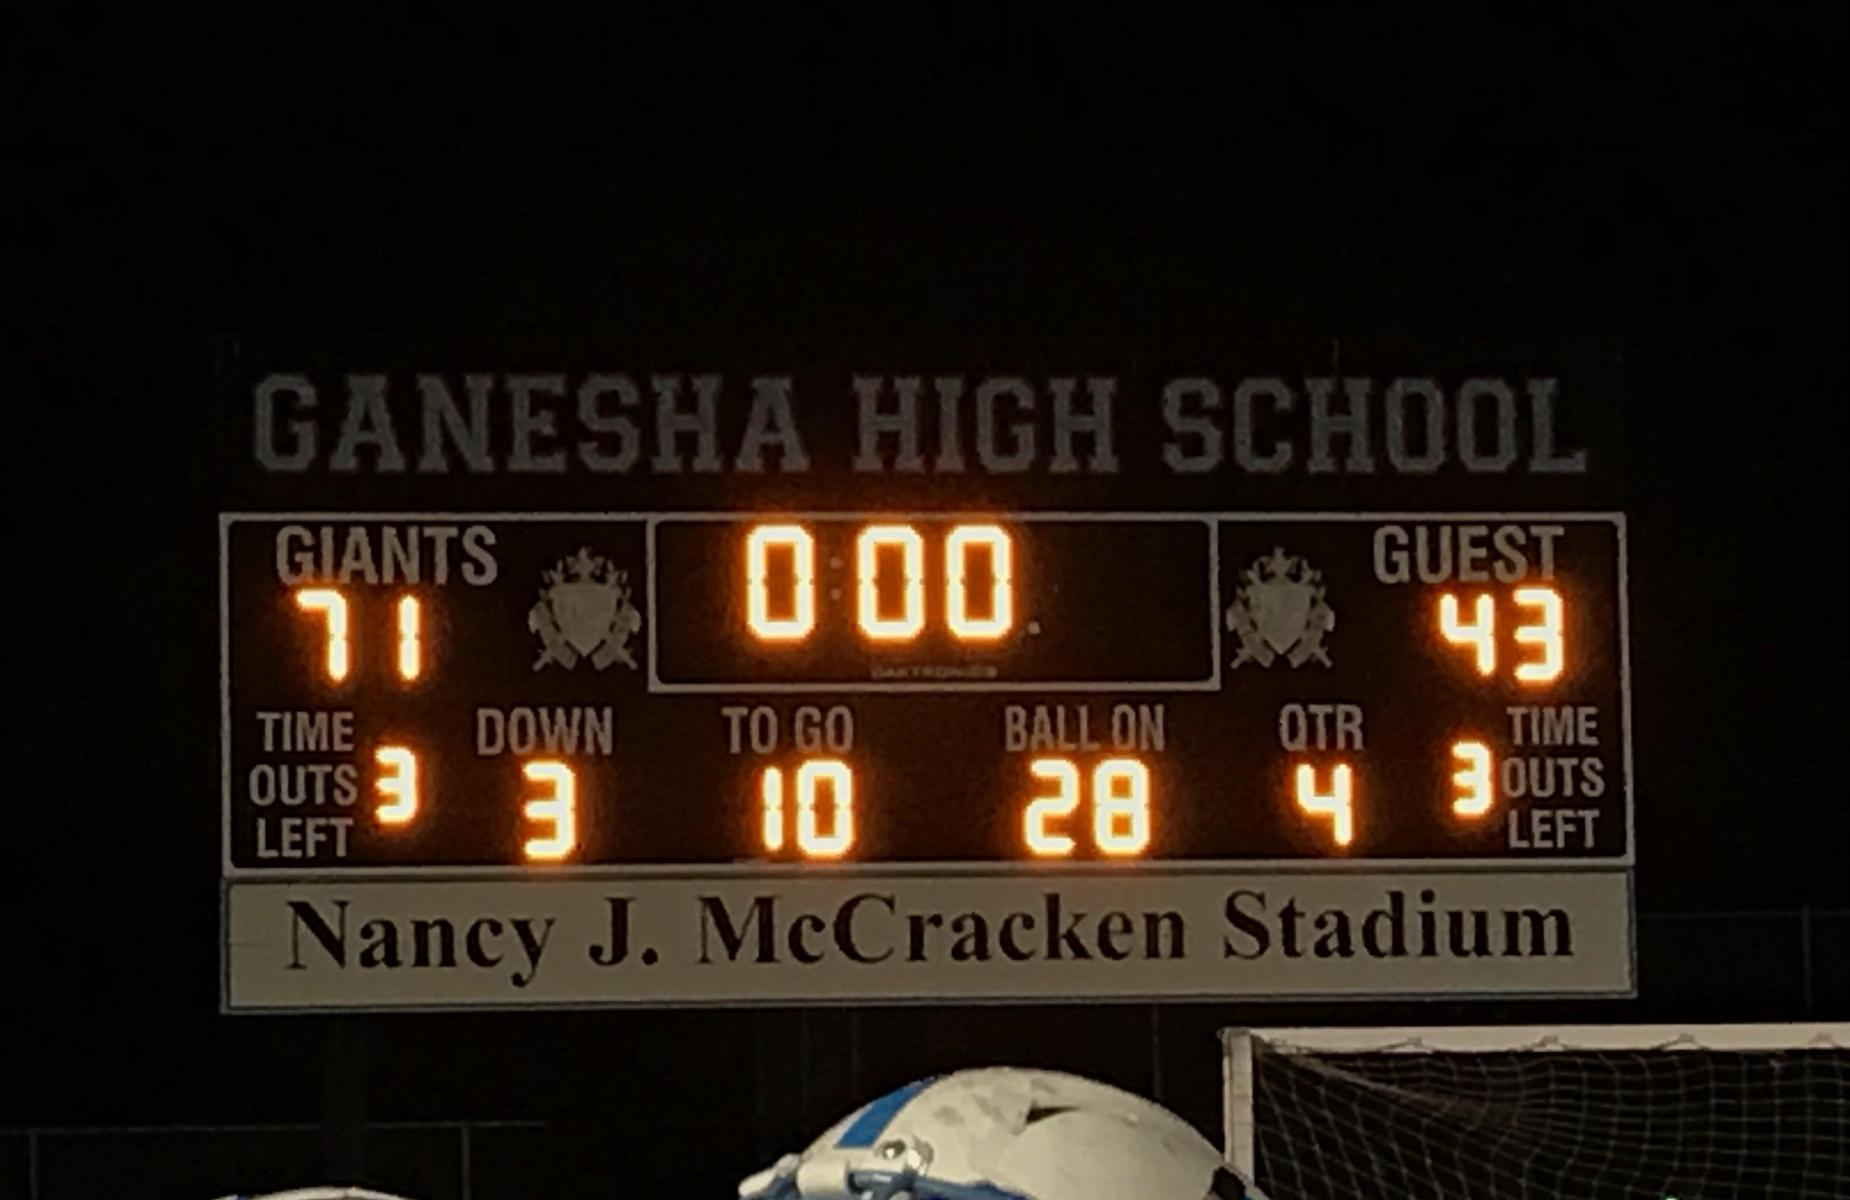 Congratulations Ganesha Football on your CIF playoff game victory!